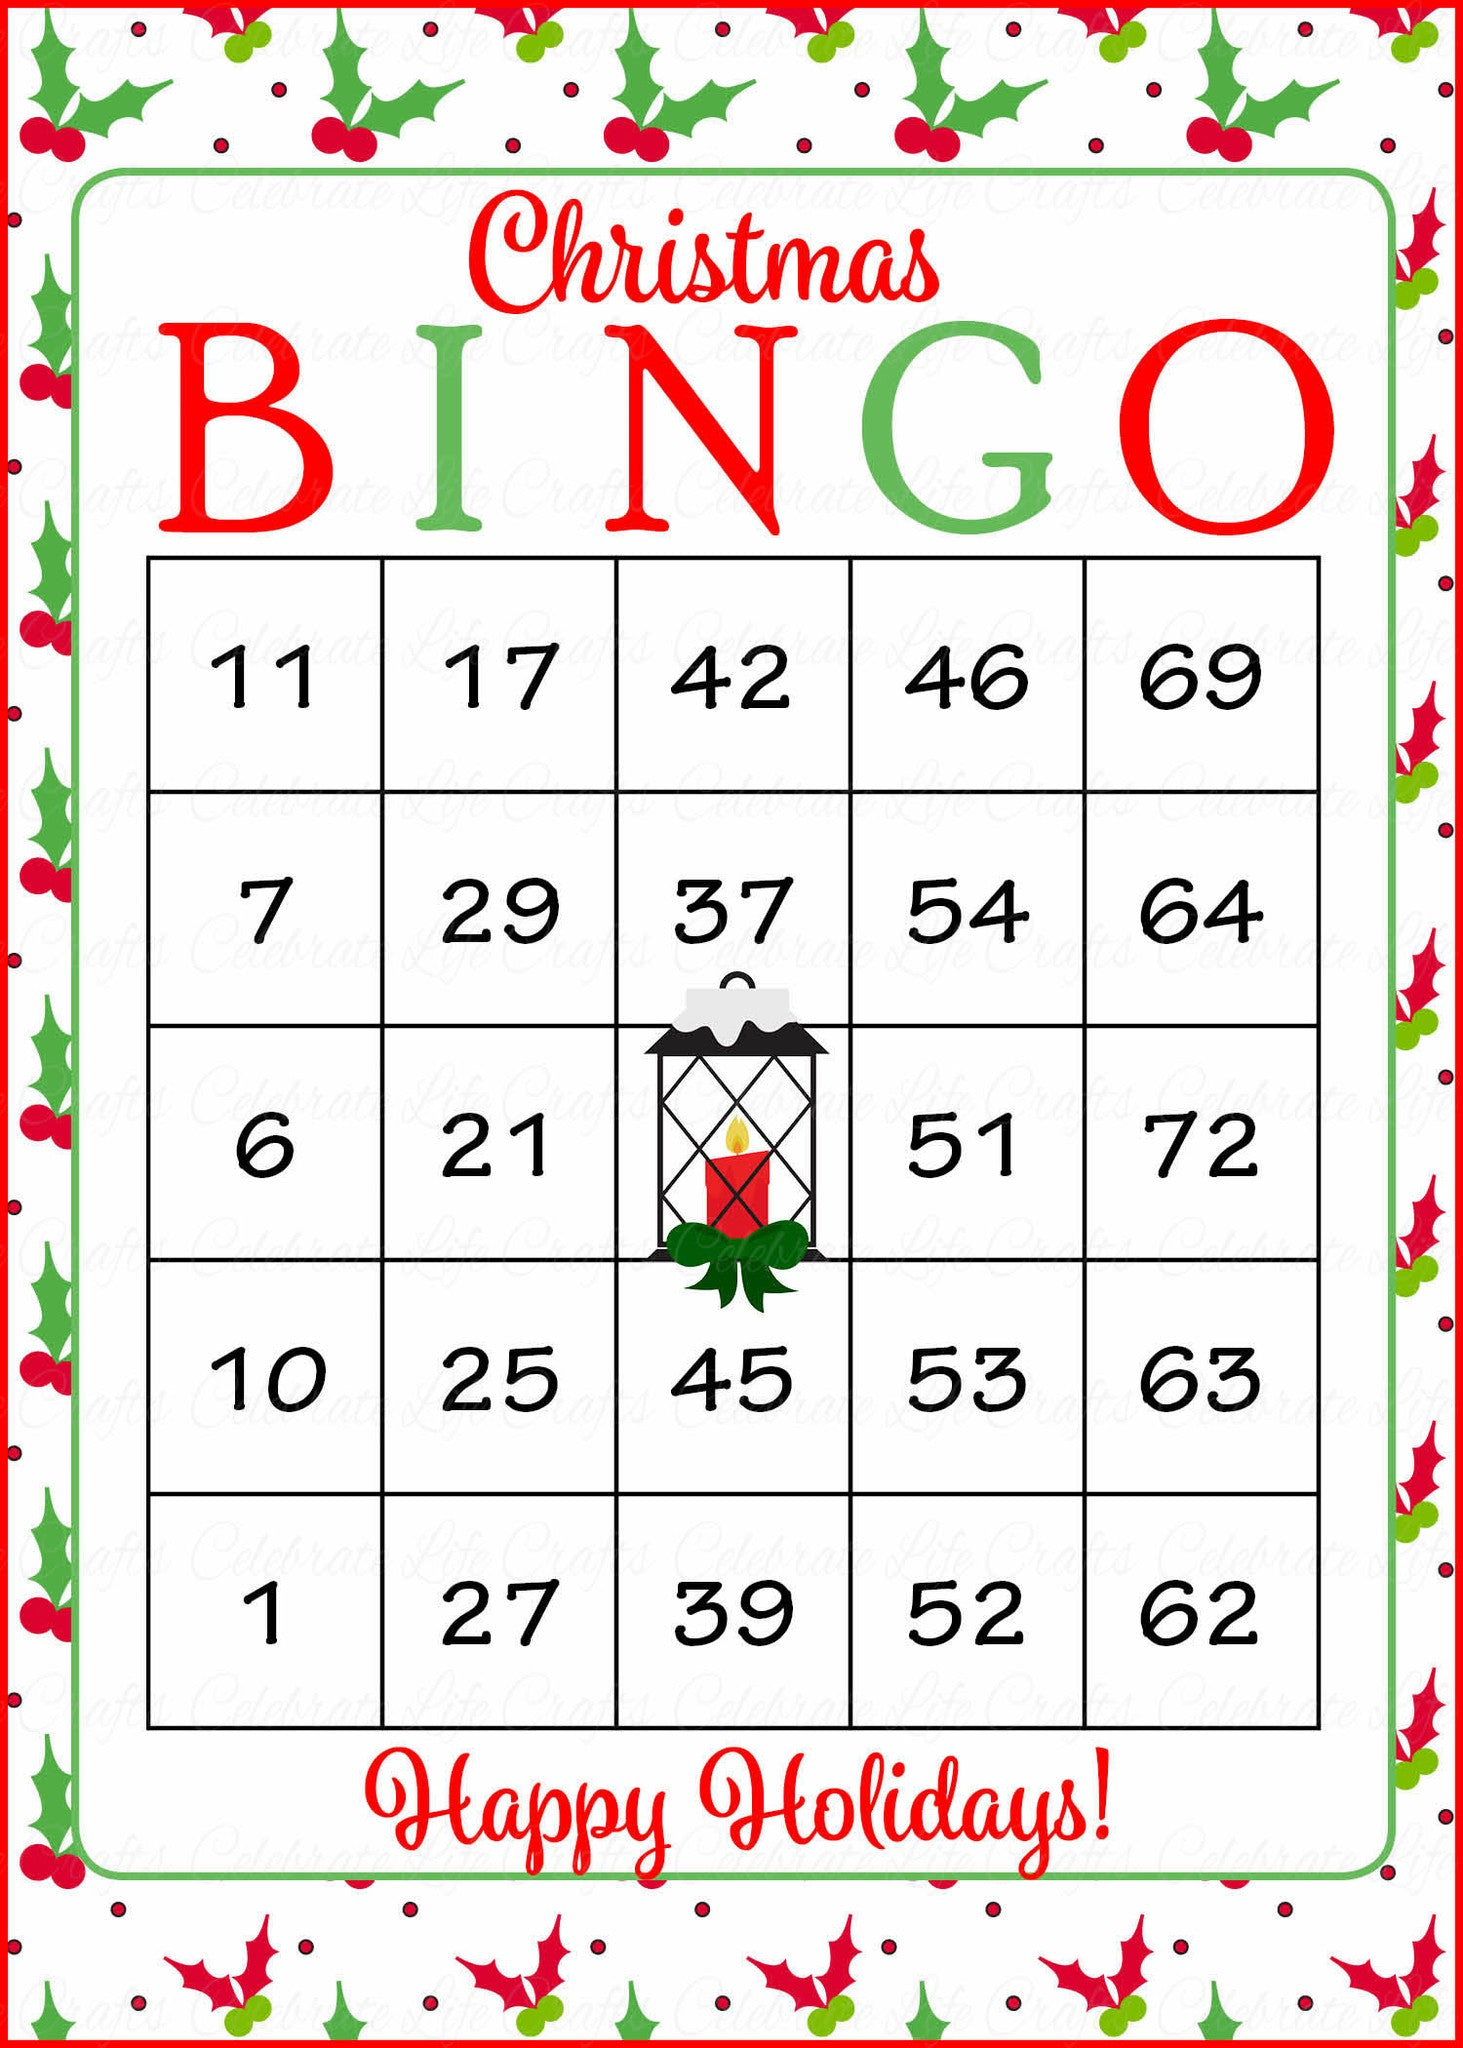 Christmas Party Ideas Games Part - 43: Christmas Bingo Cards - Printable Download - Christmas Party Games - Holly  Lantern CH3003.